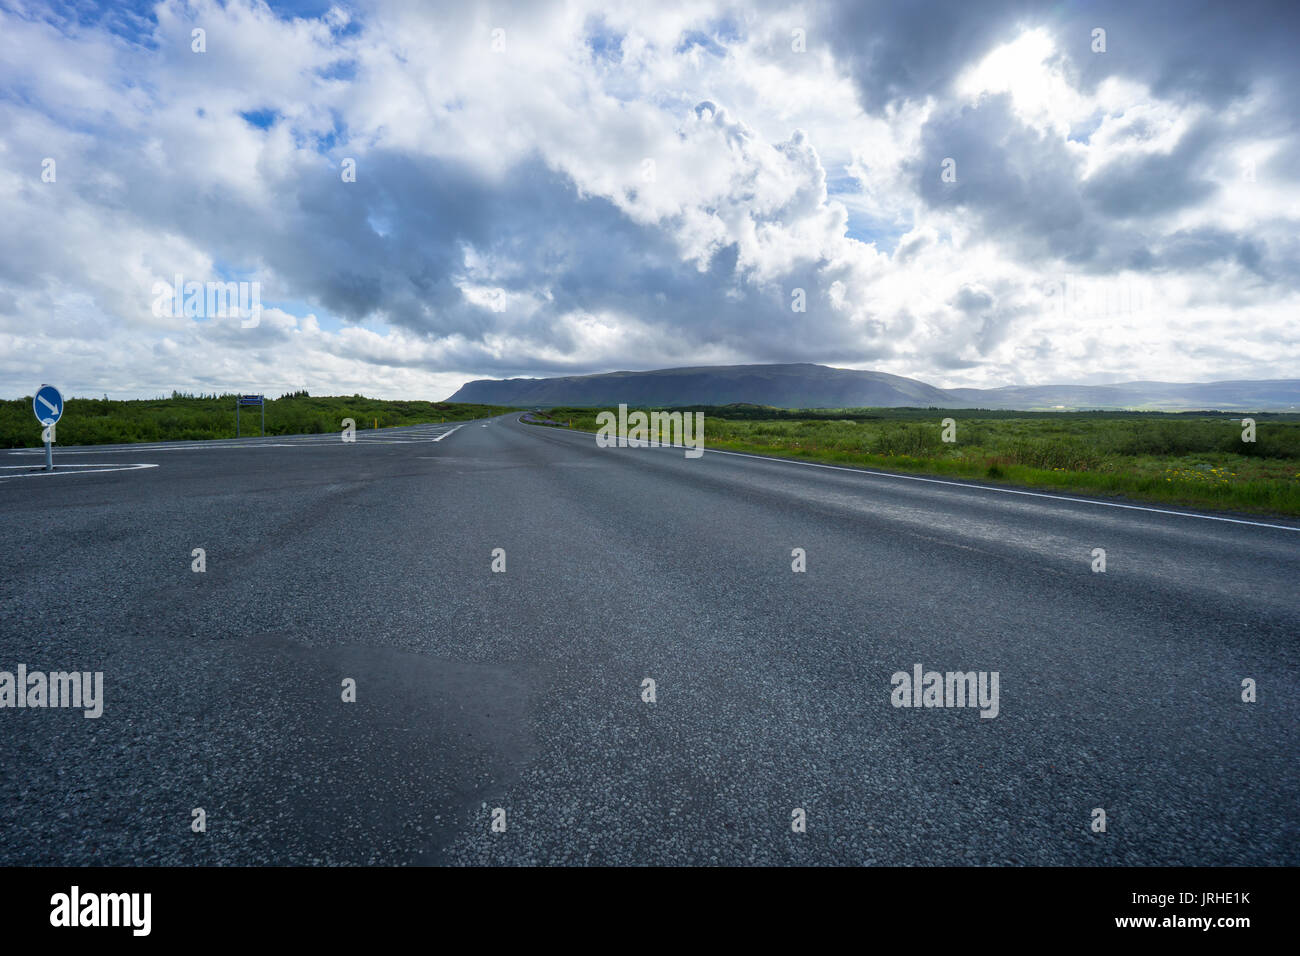 Iceland - Highway intersection between green meadows - Stock Image